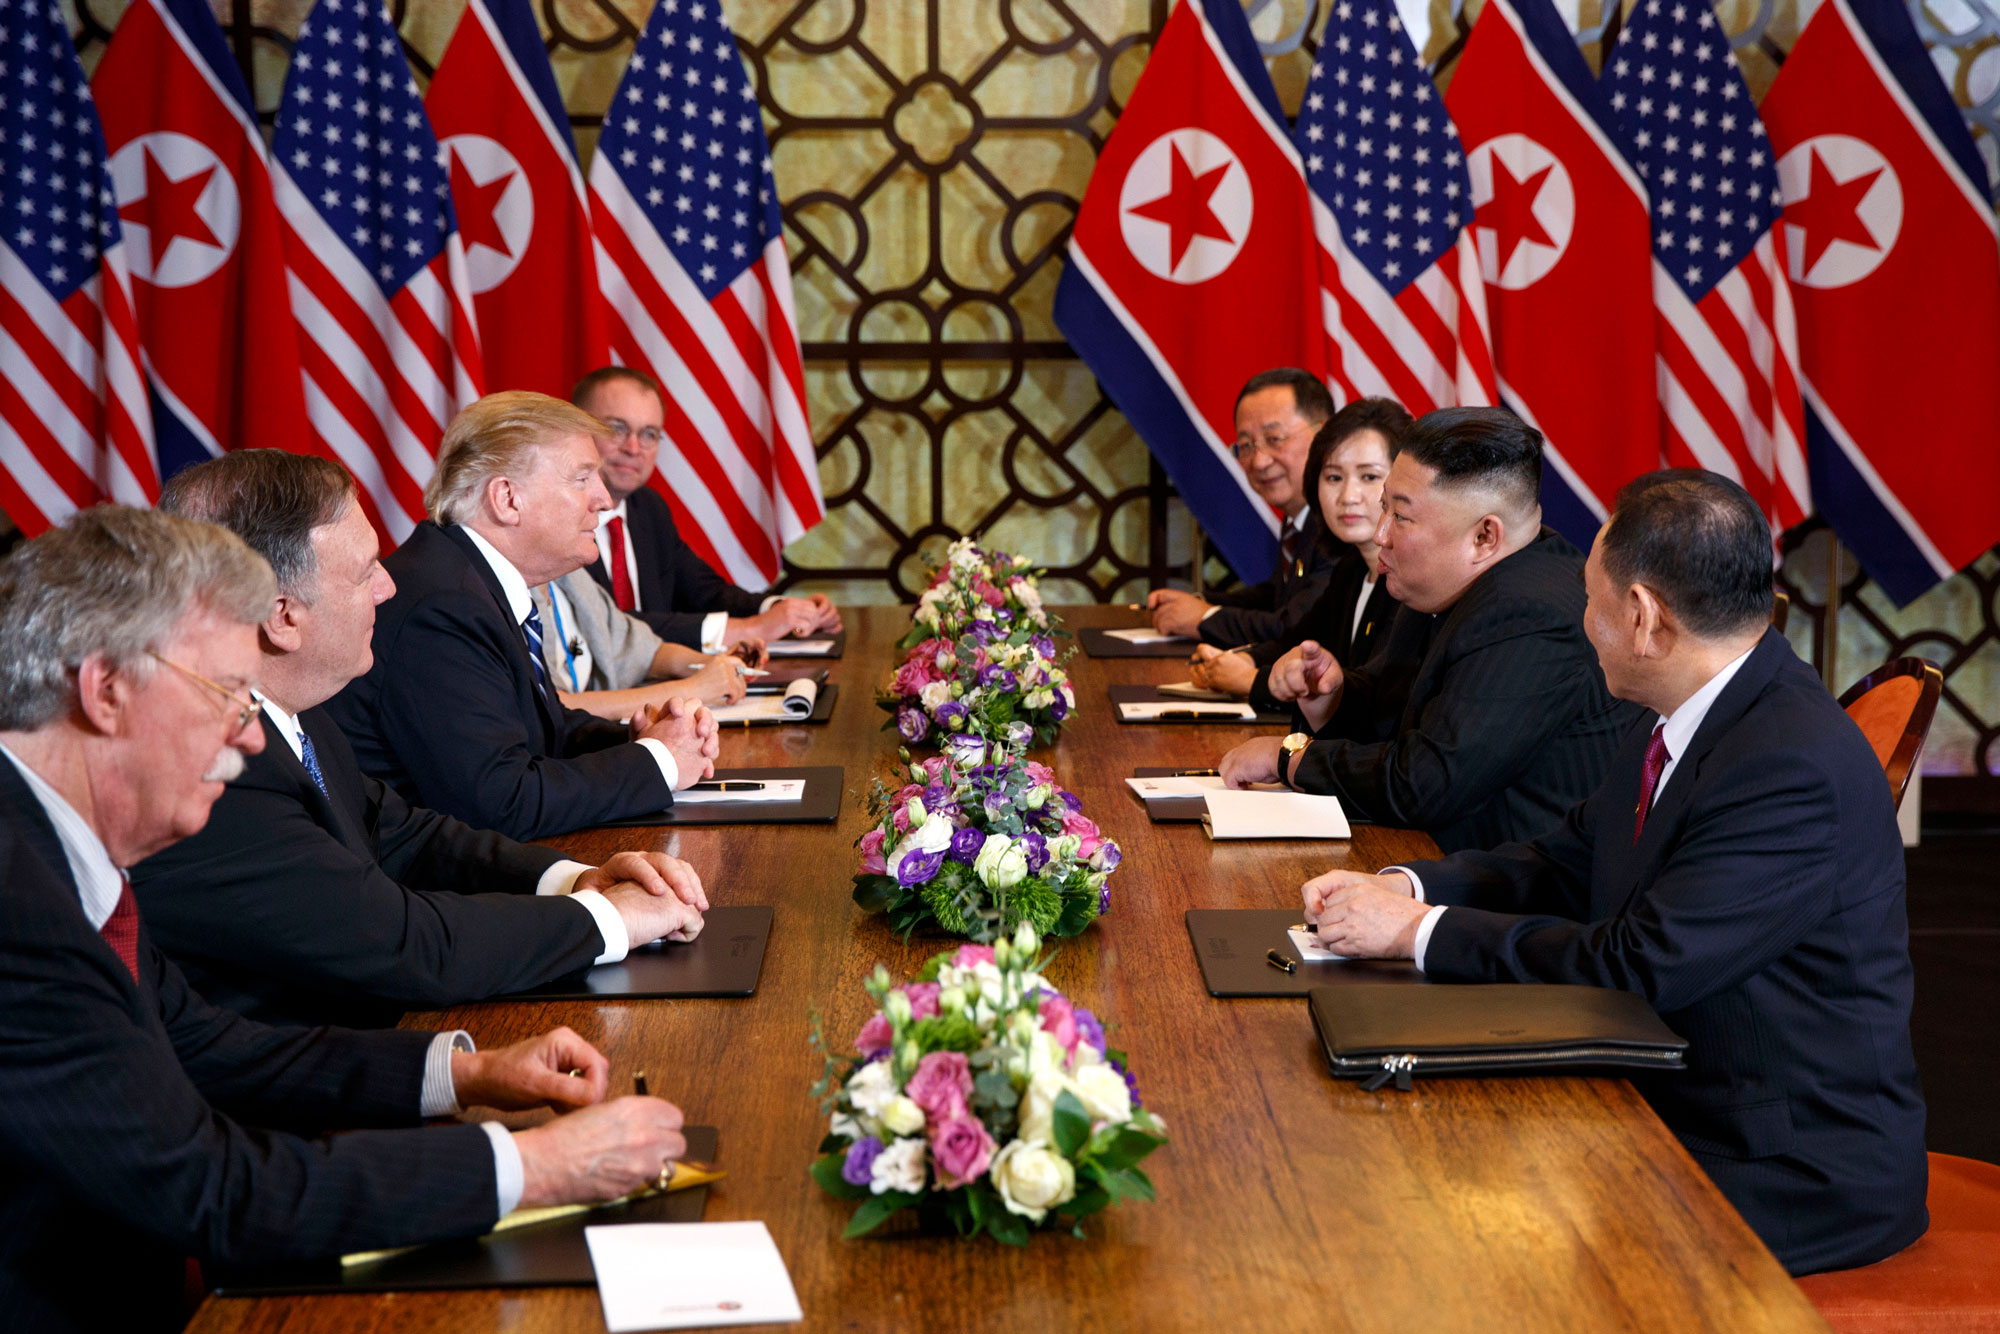 In this Feb. 28, 2019, file photo, U.S. President Donald Trump, third from left, speaks with National Security adviser John Bolton, left, and Secretary of State Mike Pompeo, second from left, during a meeting with North Korean leader Kim Jong Un, second from right, in Hanoi, Vietnam. Kim is cautiously turning up the heat after his unsuccessful summit with Trump in Hanoi two months ago.